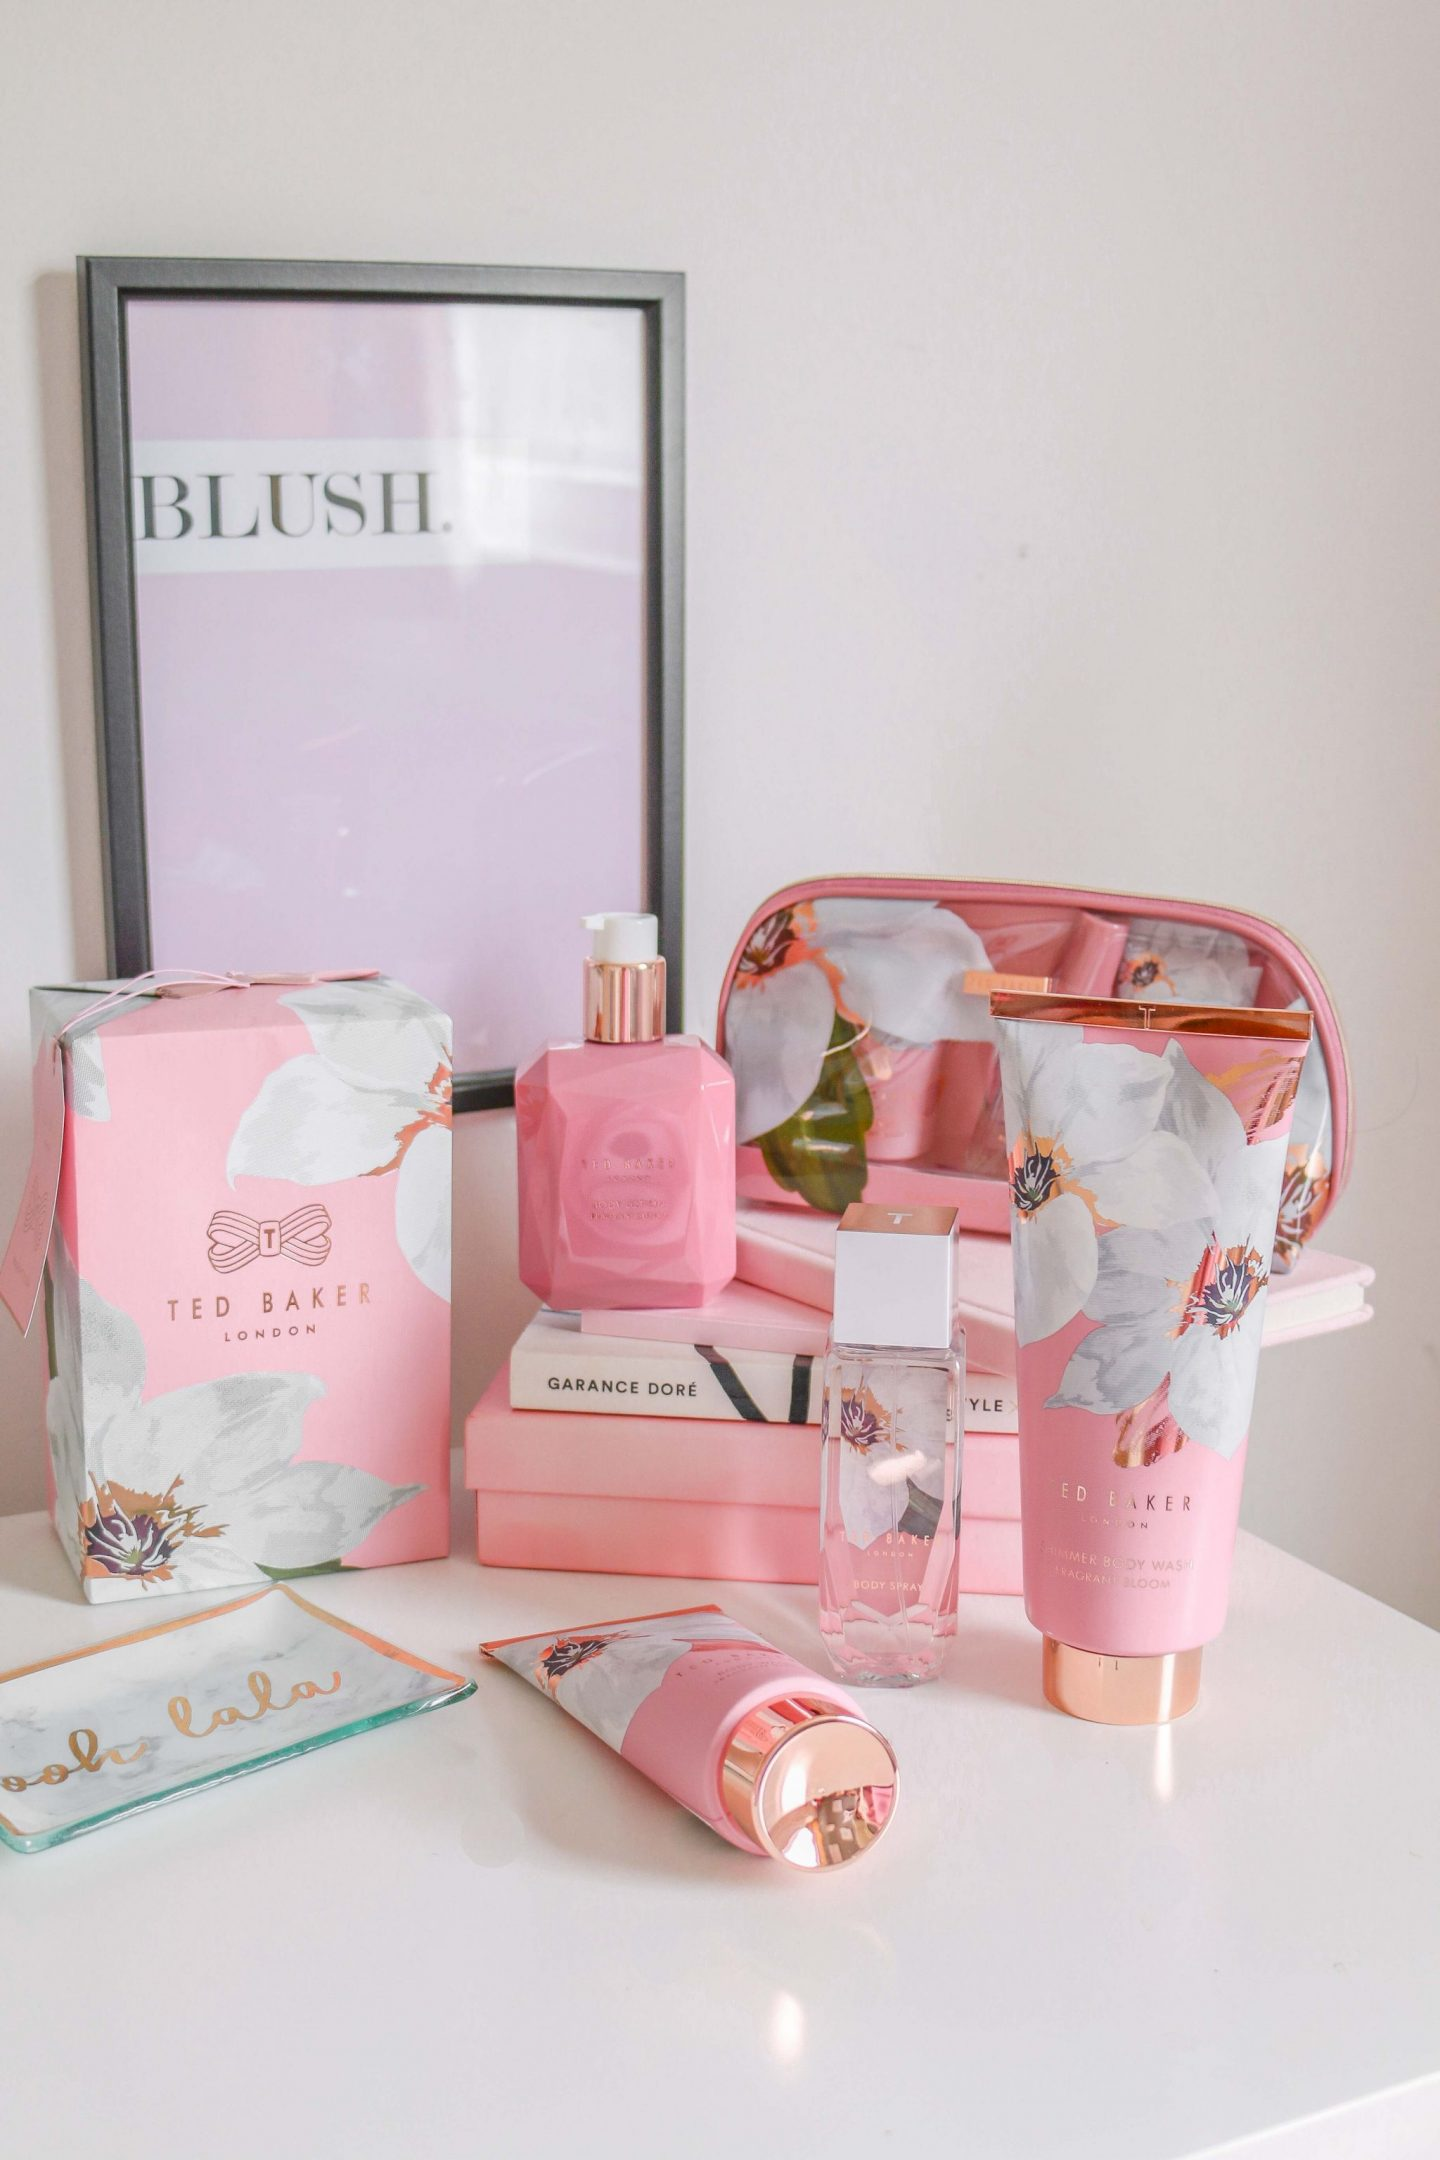 wedding, things to do after your wedding, newlywed, wedding planning, wedding flatlay, flatlay, ted baker fragrant bloom collection, ted baker, pink flatlay, ted baker products